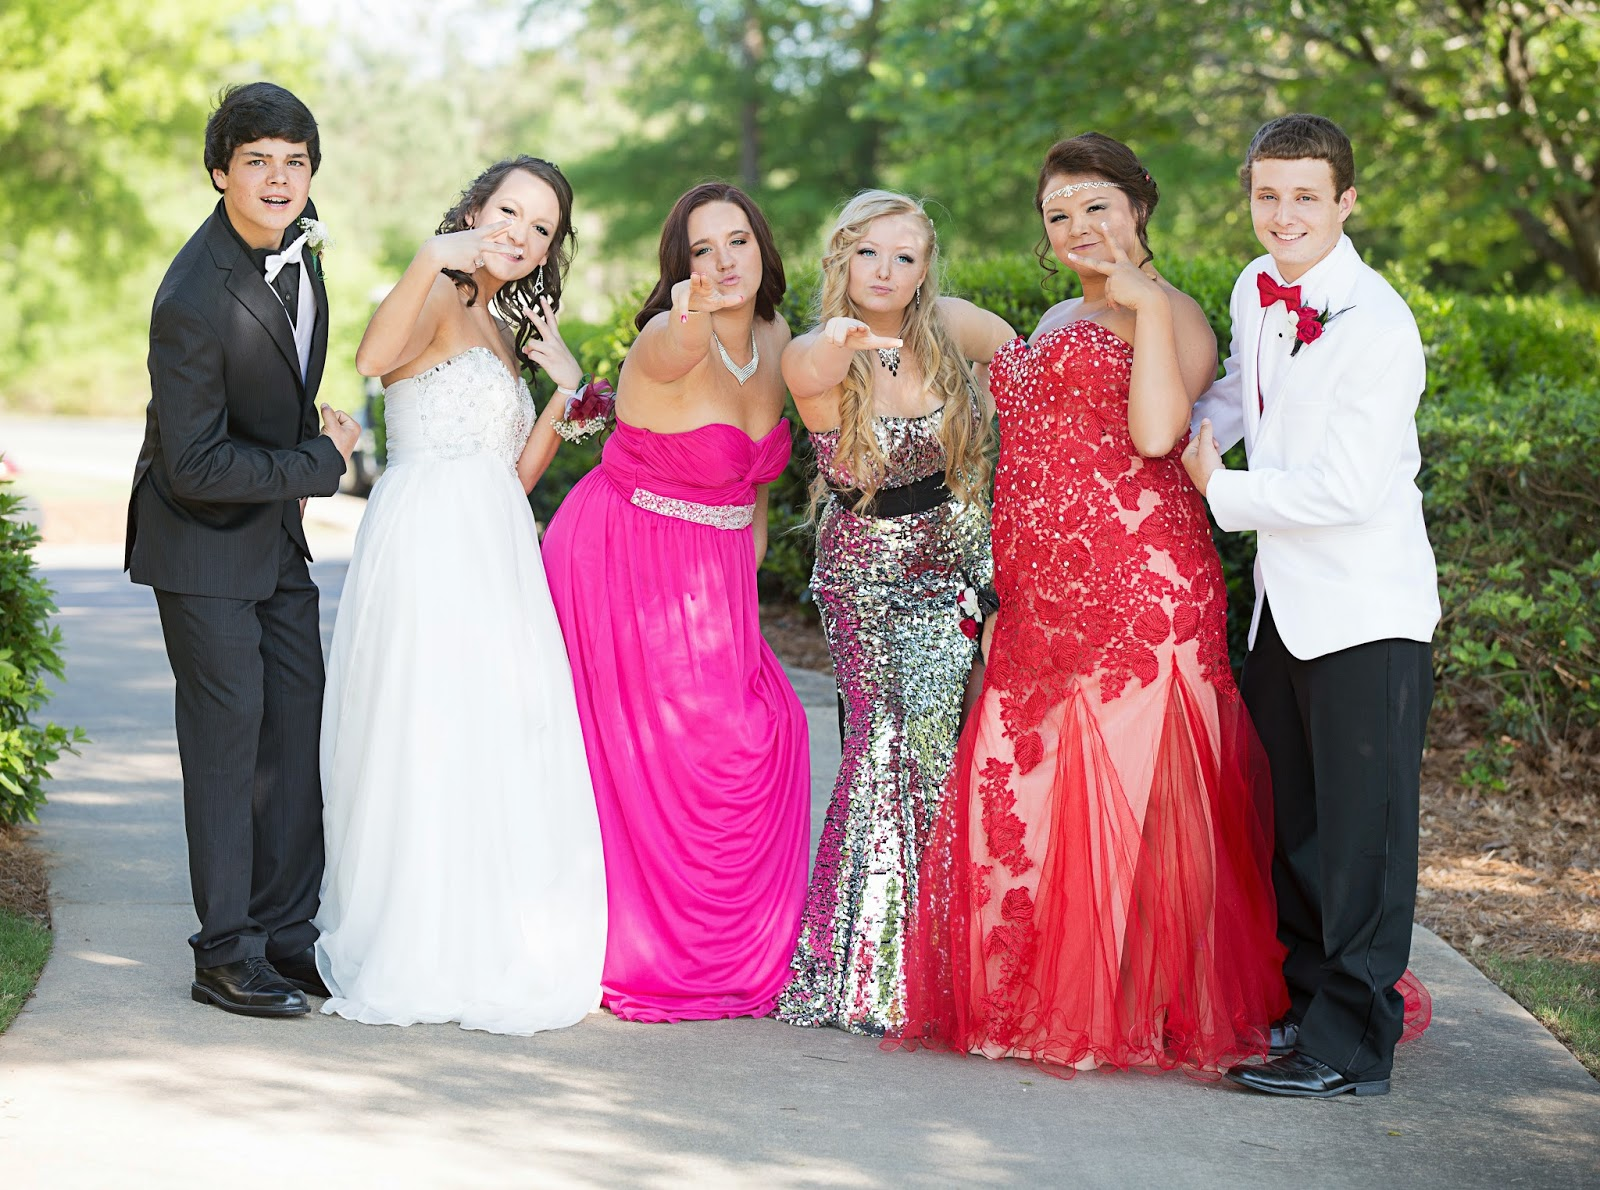 I Hope Every Single One Of You Had A Incredible Time At Prom Here Are Some My Favorites